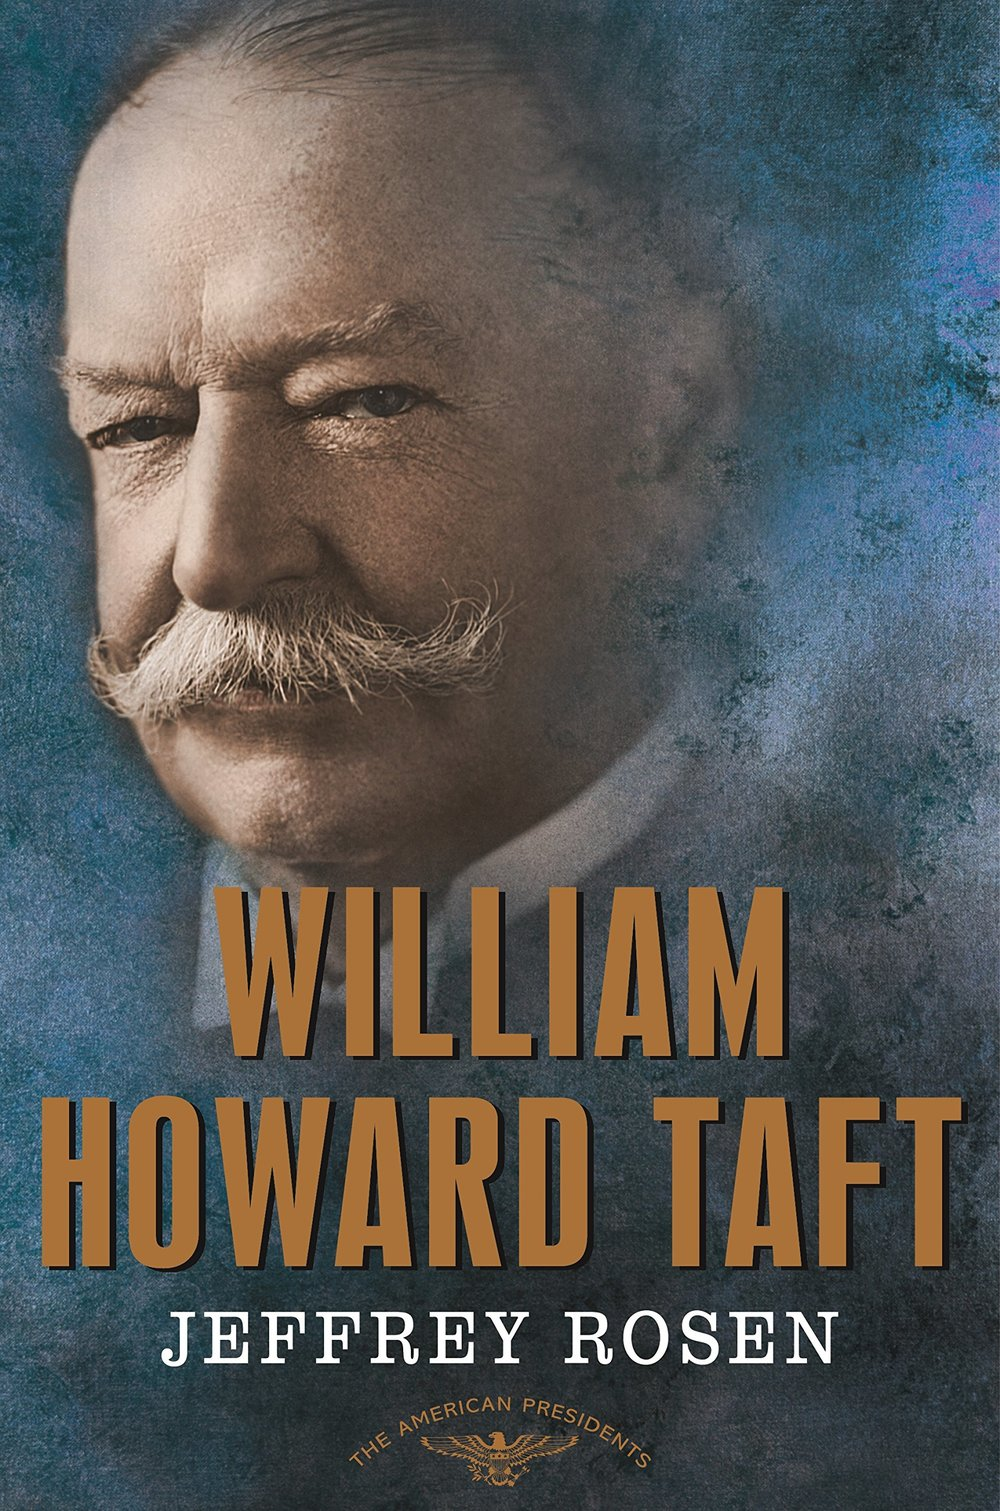 William Howard Taft Jeffrey Rosen.jpg